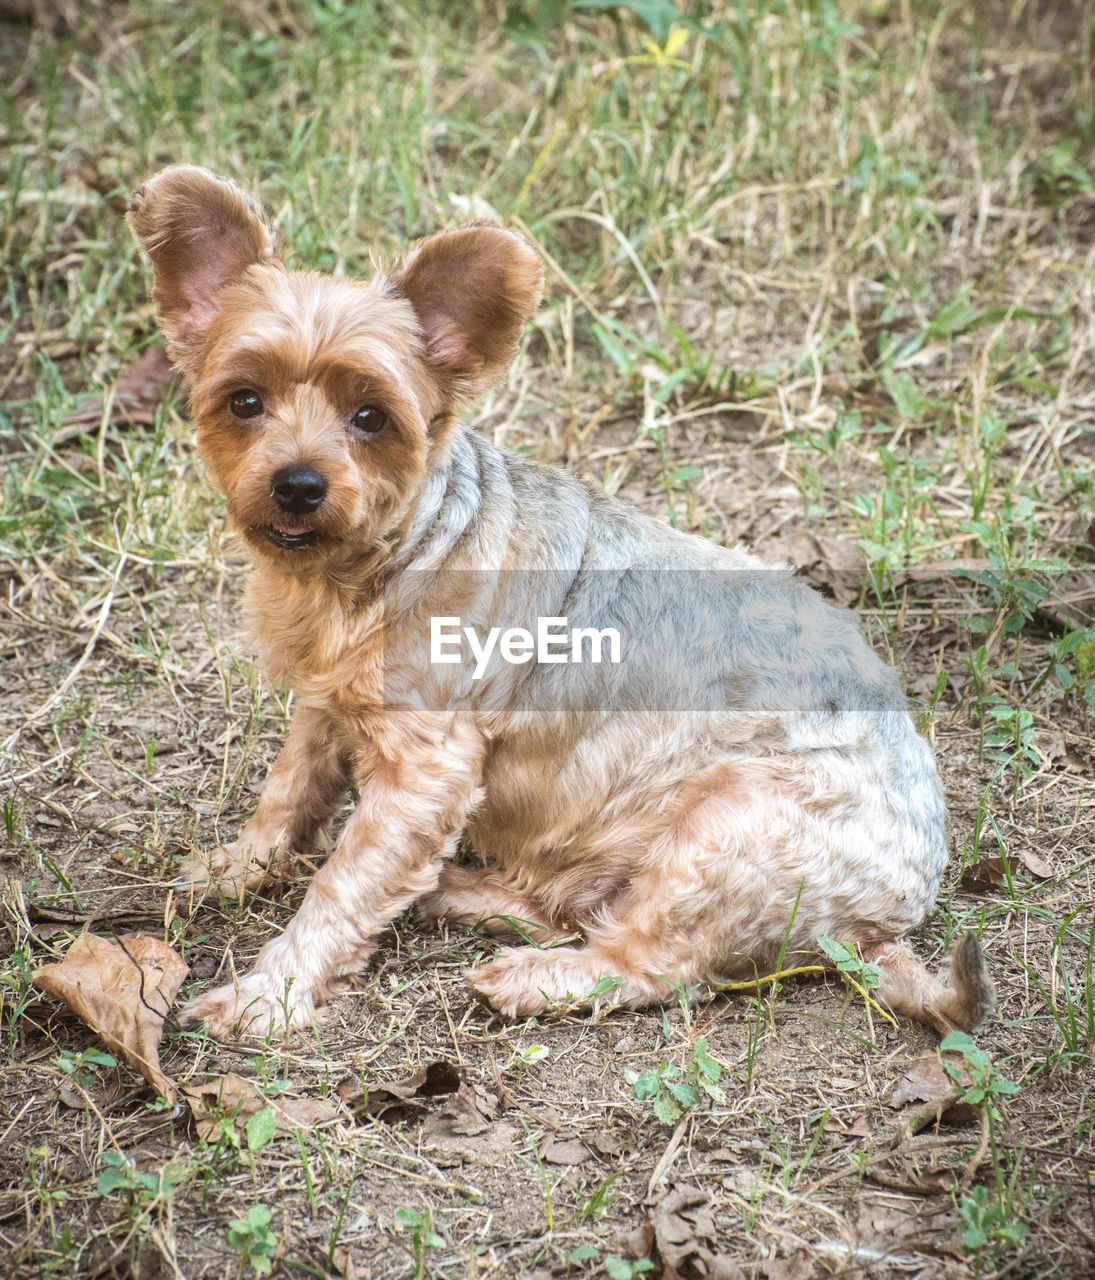 one animal, canine, dog, animal, mammal, animal themes, domestic, pets, domestic animals, looking at camera, portrait, land, vertebrate, field, grass, plant, day, no people, nature, sitting, purebred dog